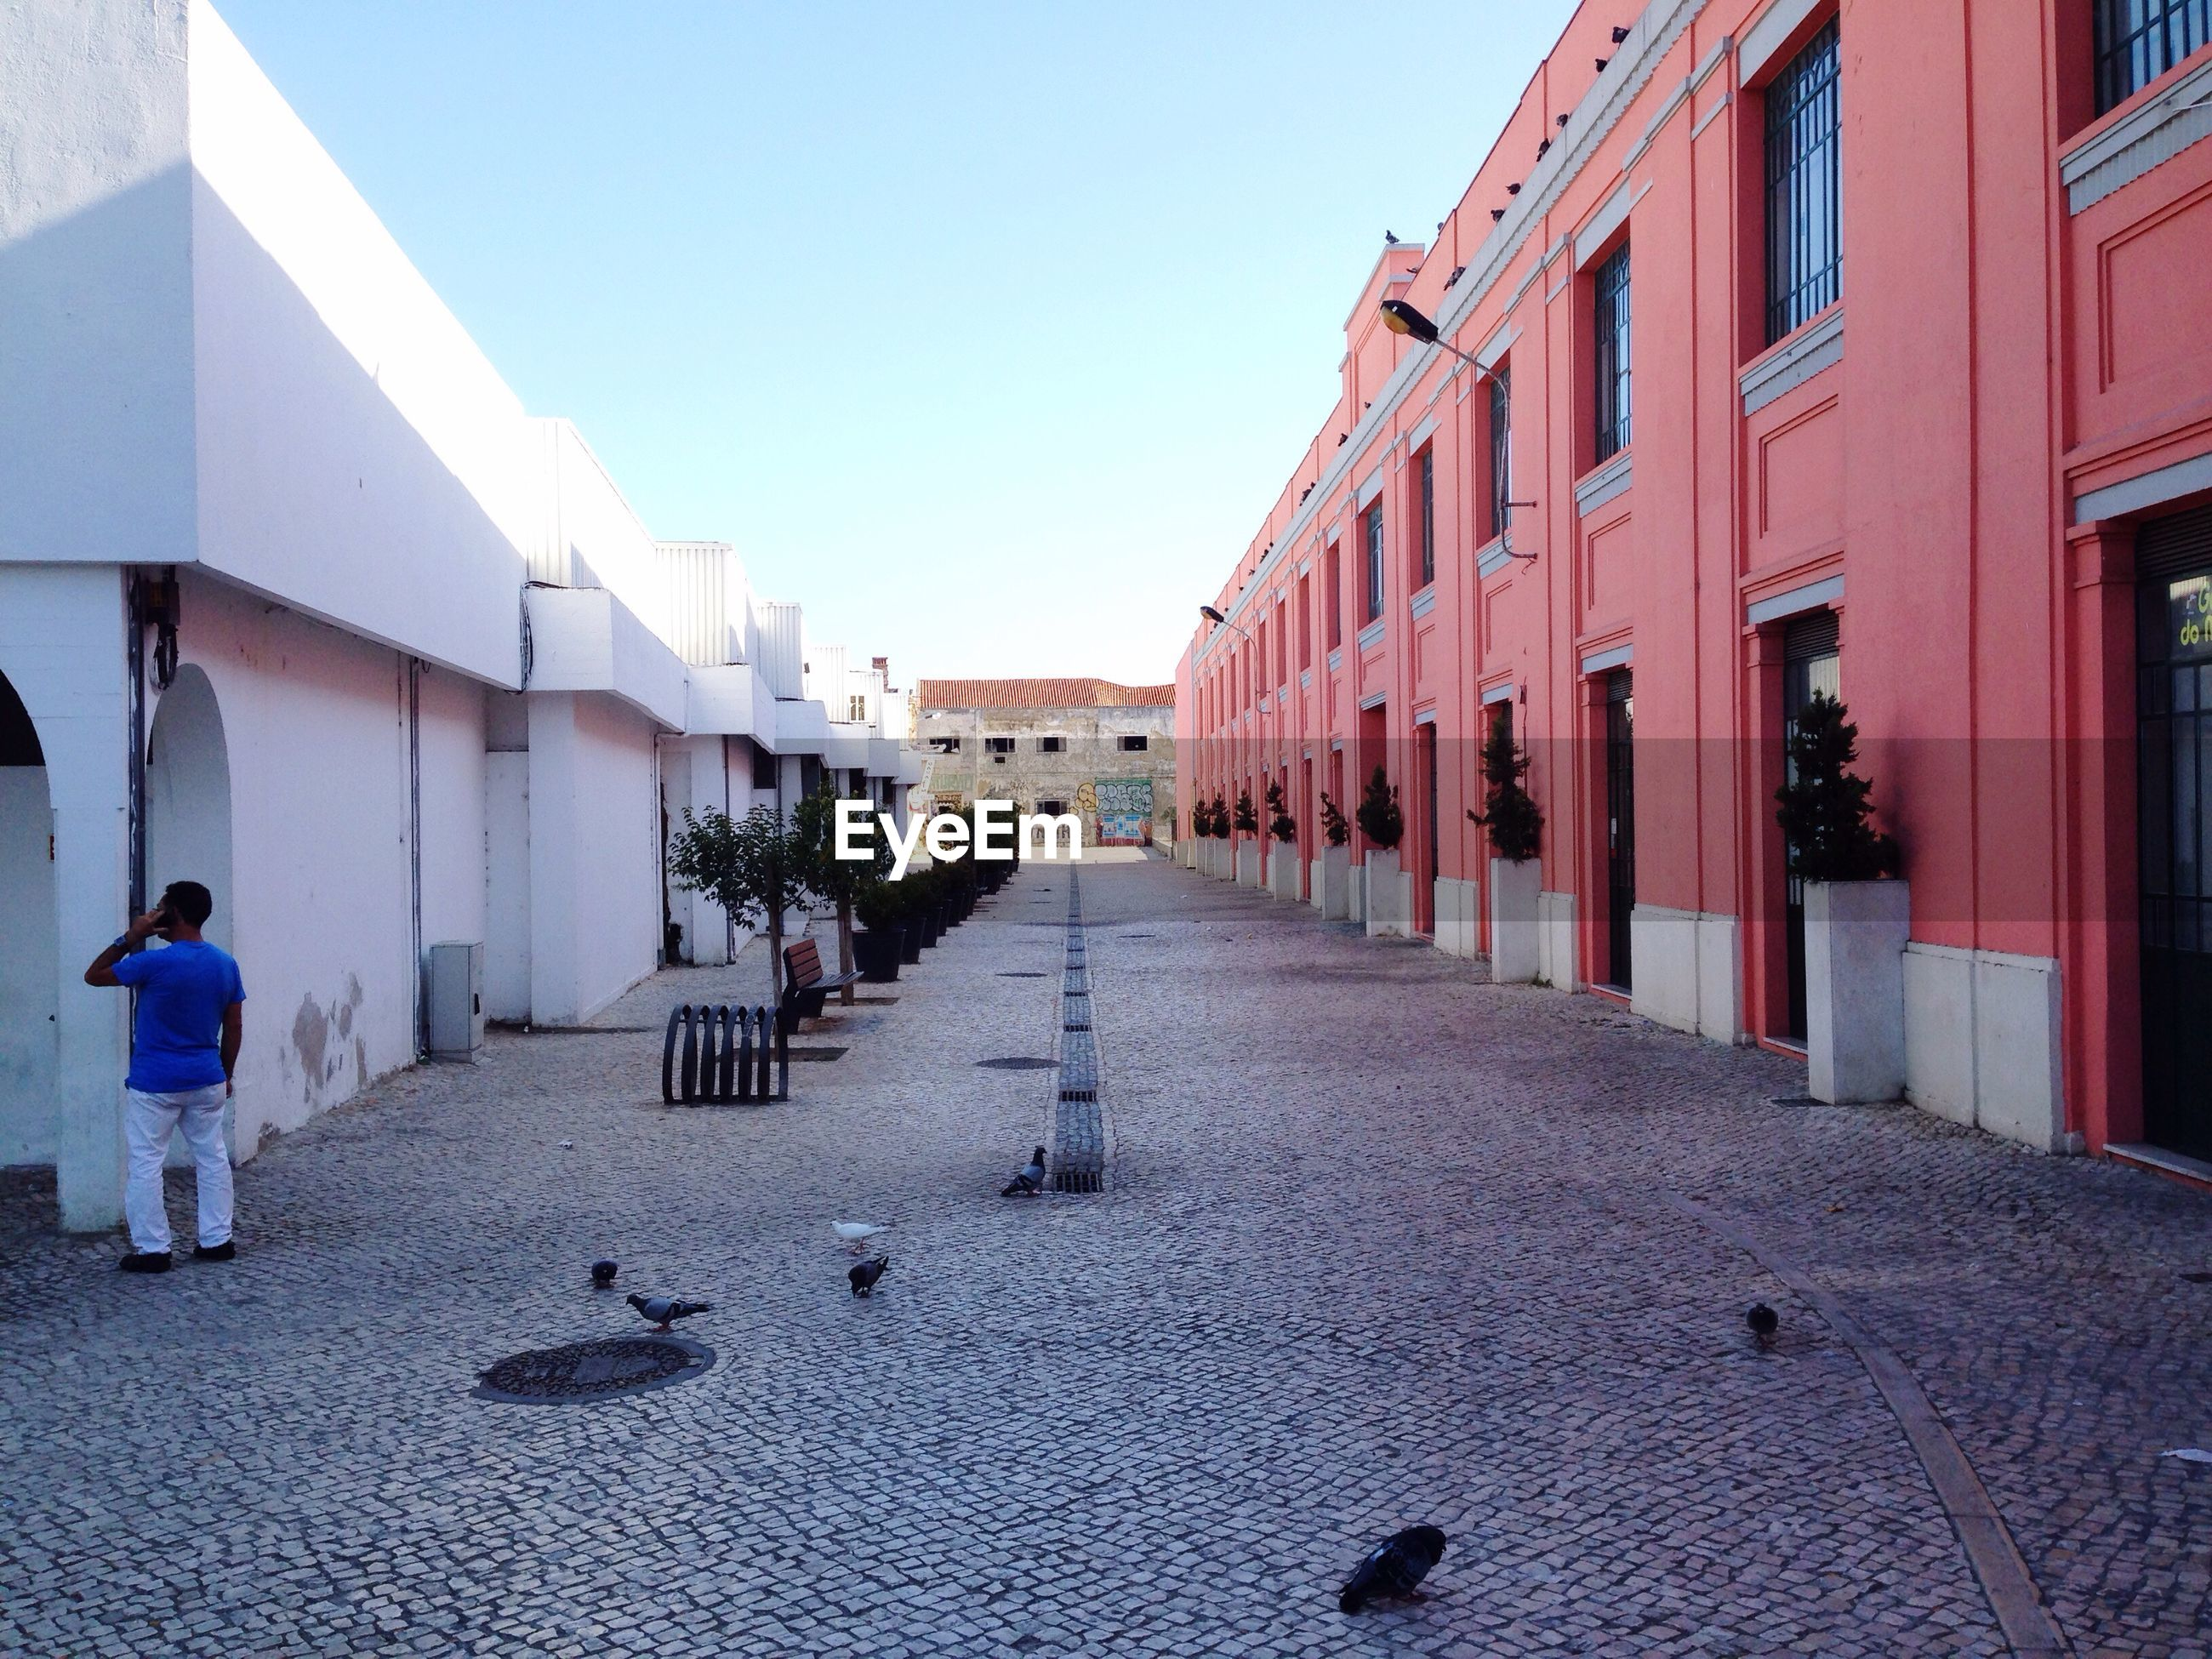 Pigeons on cobbled street amidst buildings